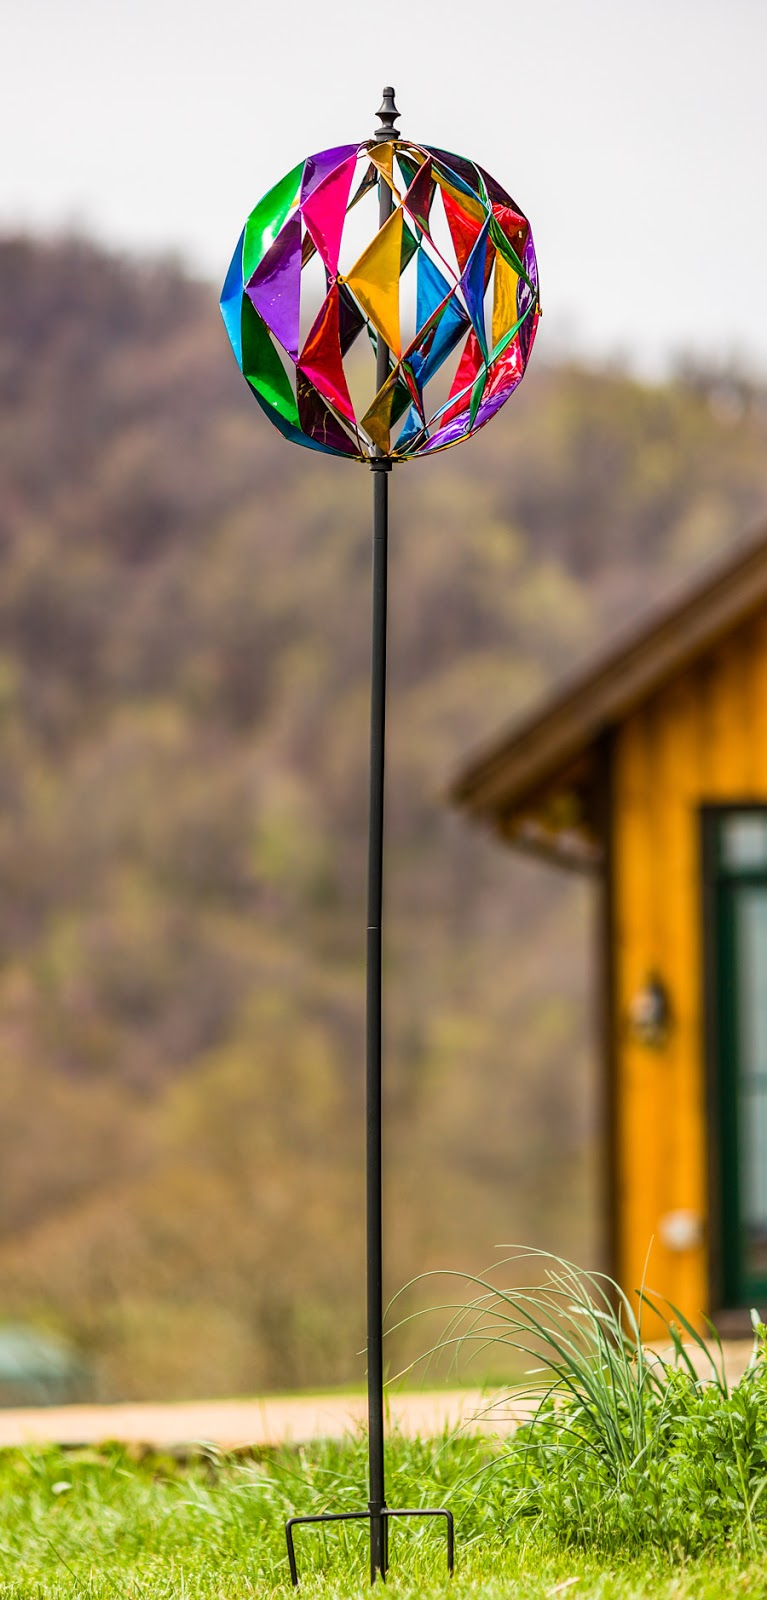 Evergreen Enterprises: New Wind Spinners from Evergreen